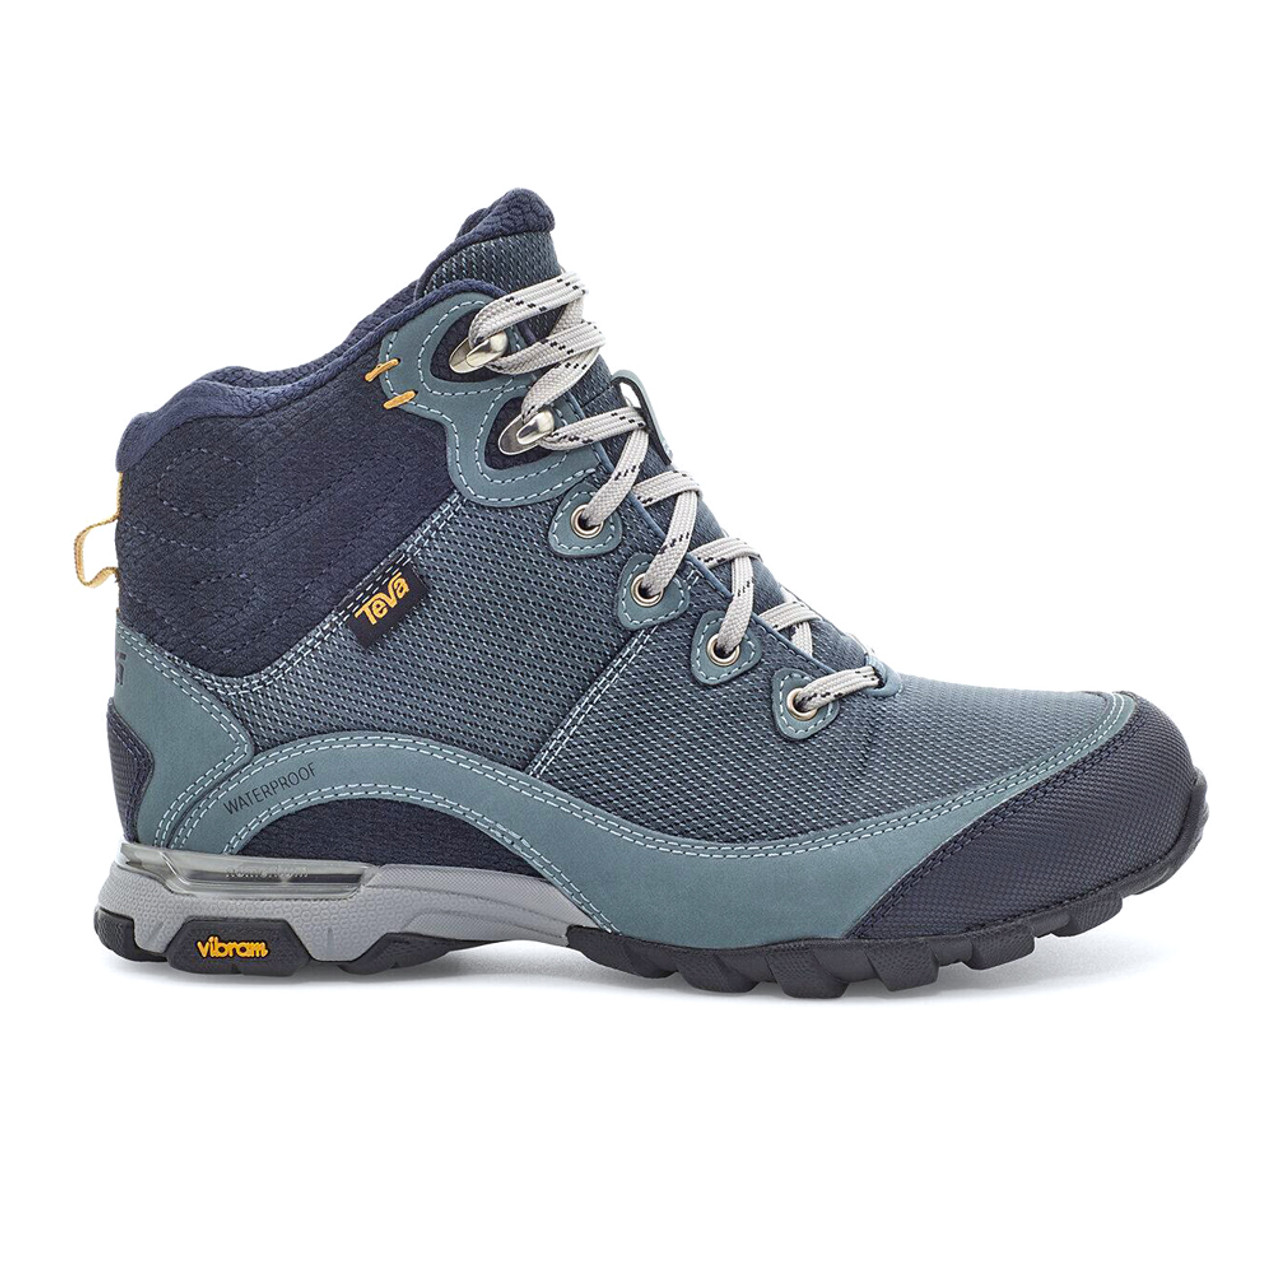 Teva Womens Sugarpine Mid Waterproof Hiking Boot